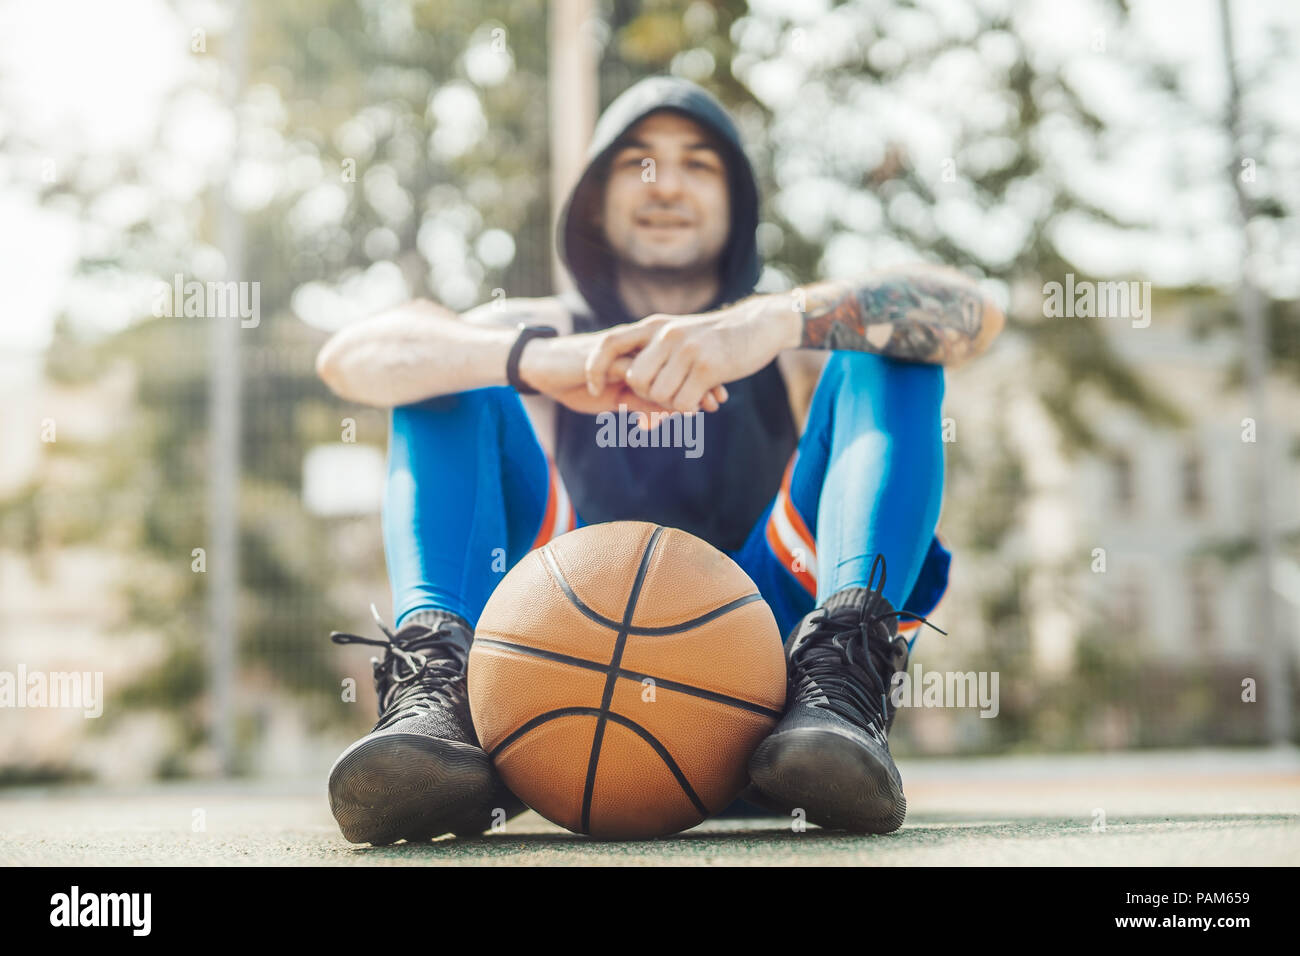 Bald attractive man sitting under basketball hoop and board on the basketball court. Man is on focus and foreground, background is blurred. - Stock Image